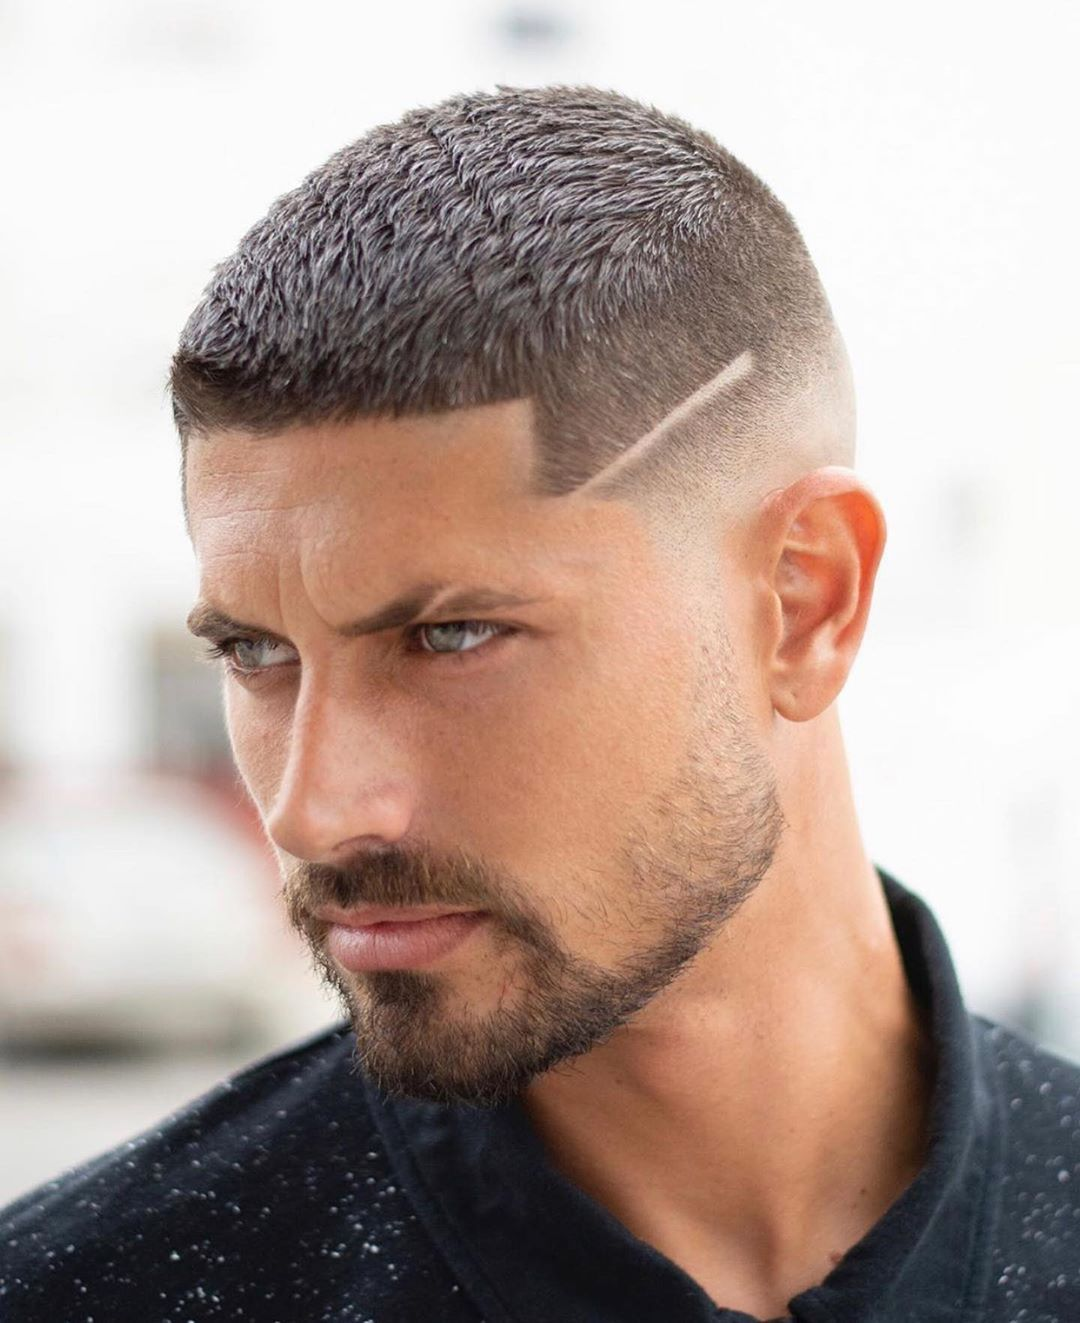 17 Best Short Hairstyles For Men 2020 The Indian Gent In 2020 Mens Haircuts Short Mens Hairstyles Short Haircuts For Men